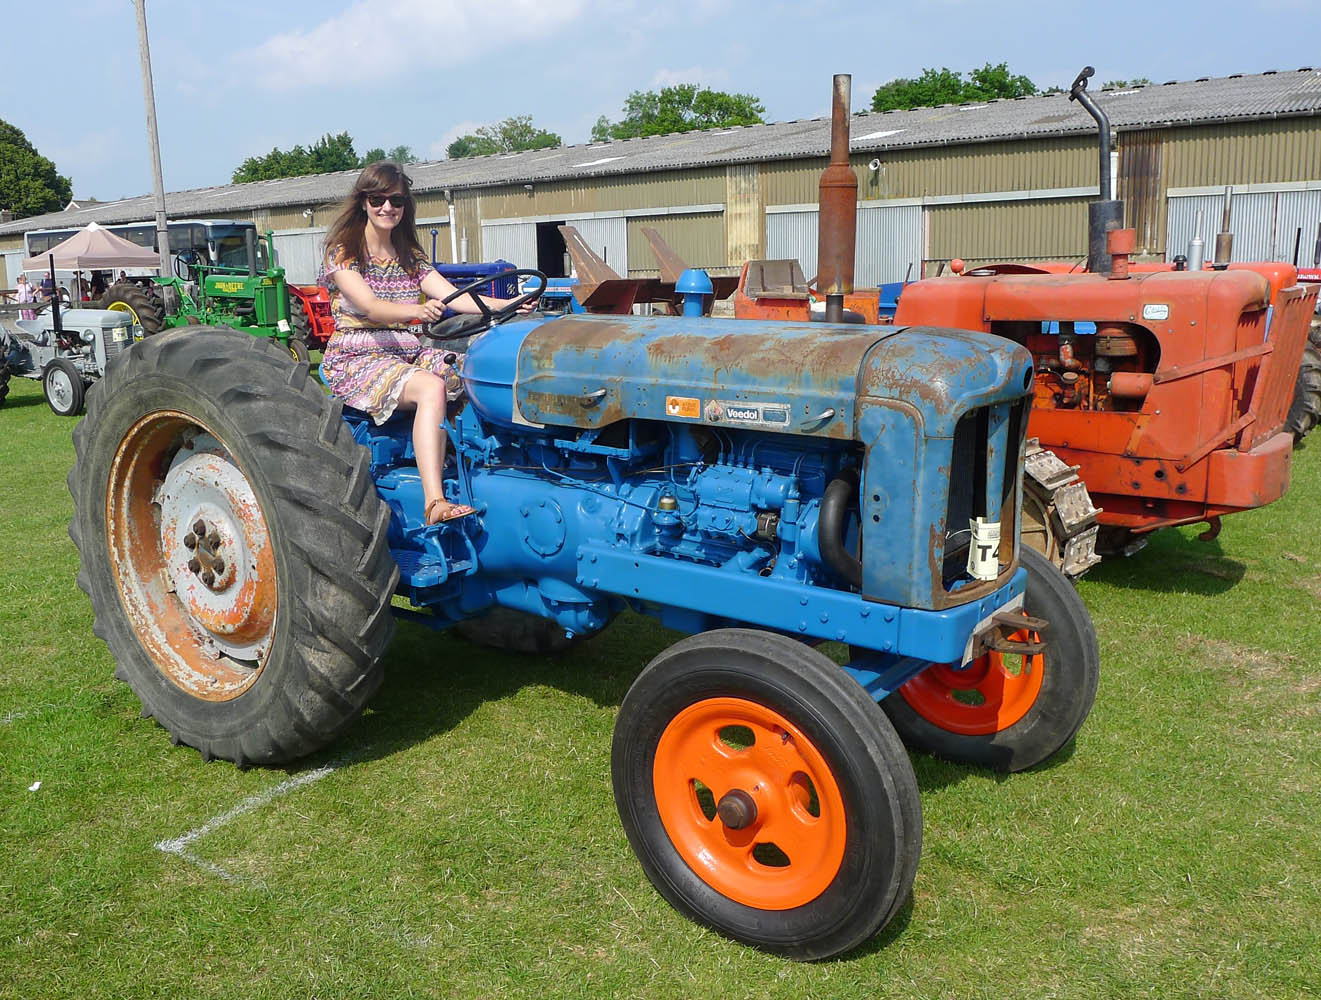 Oldest Antique Tractors : …rode a vintage tractor today s the day i